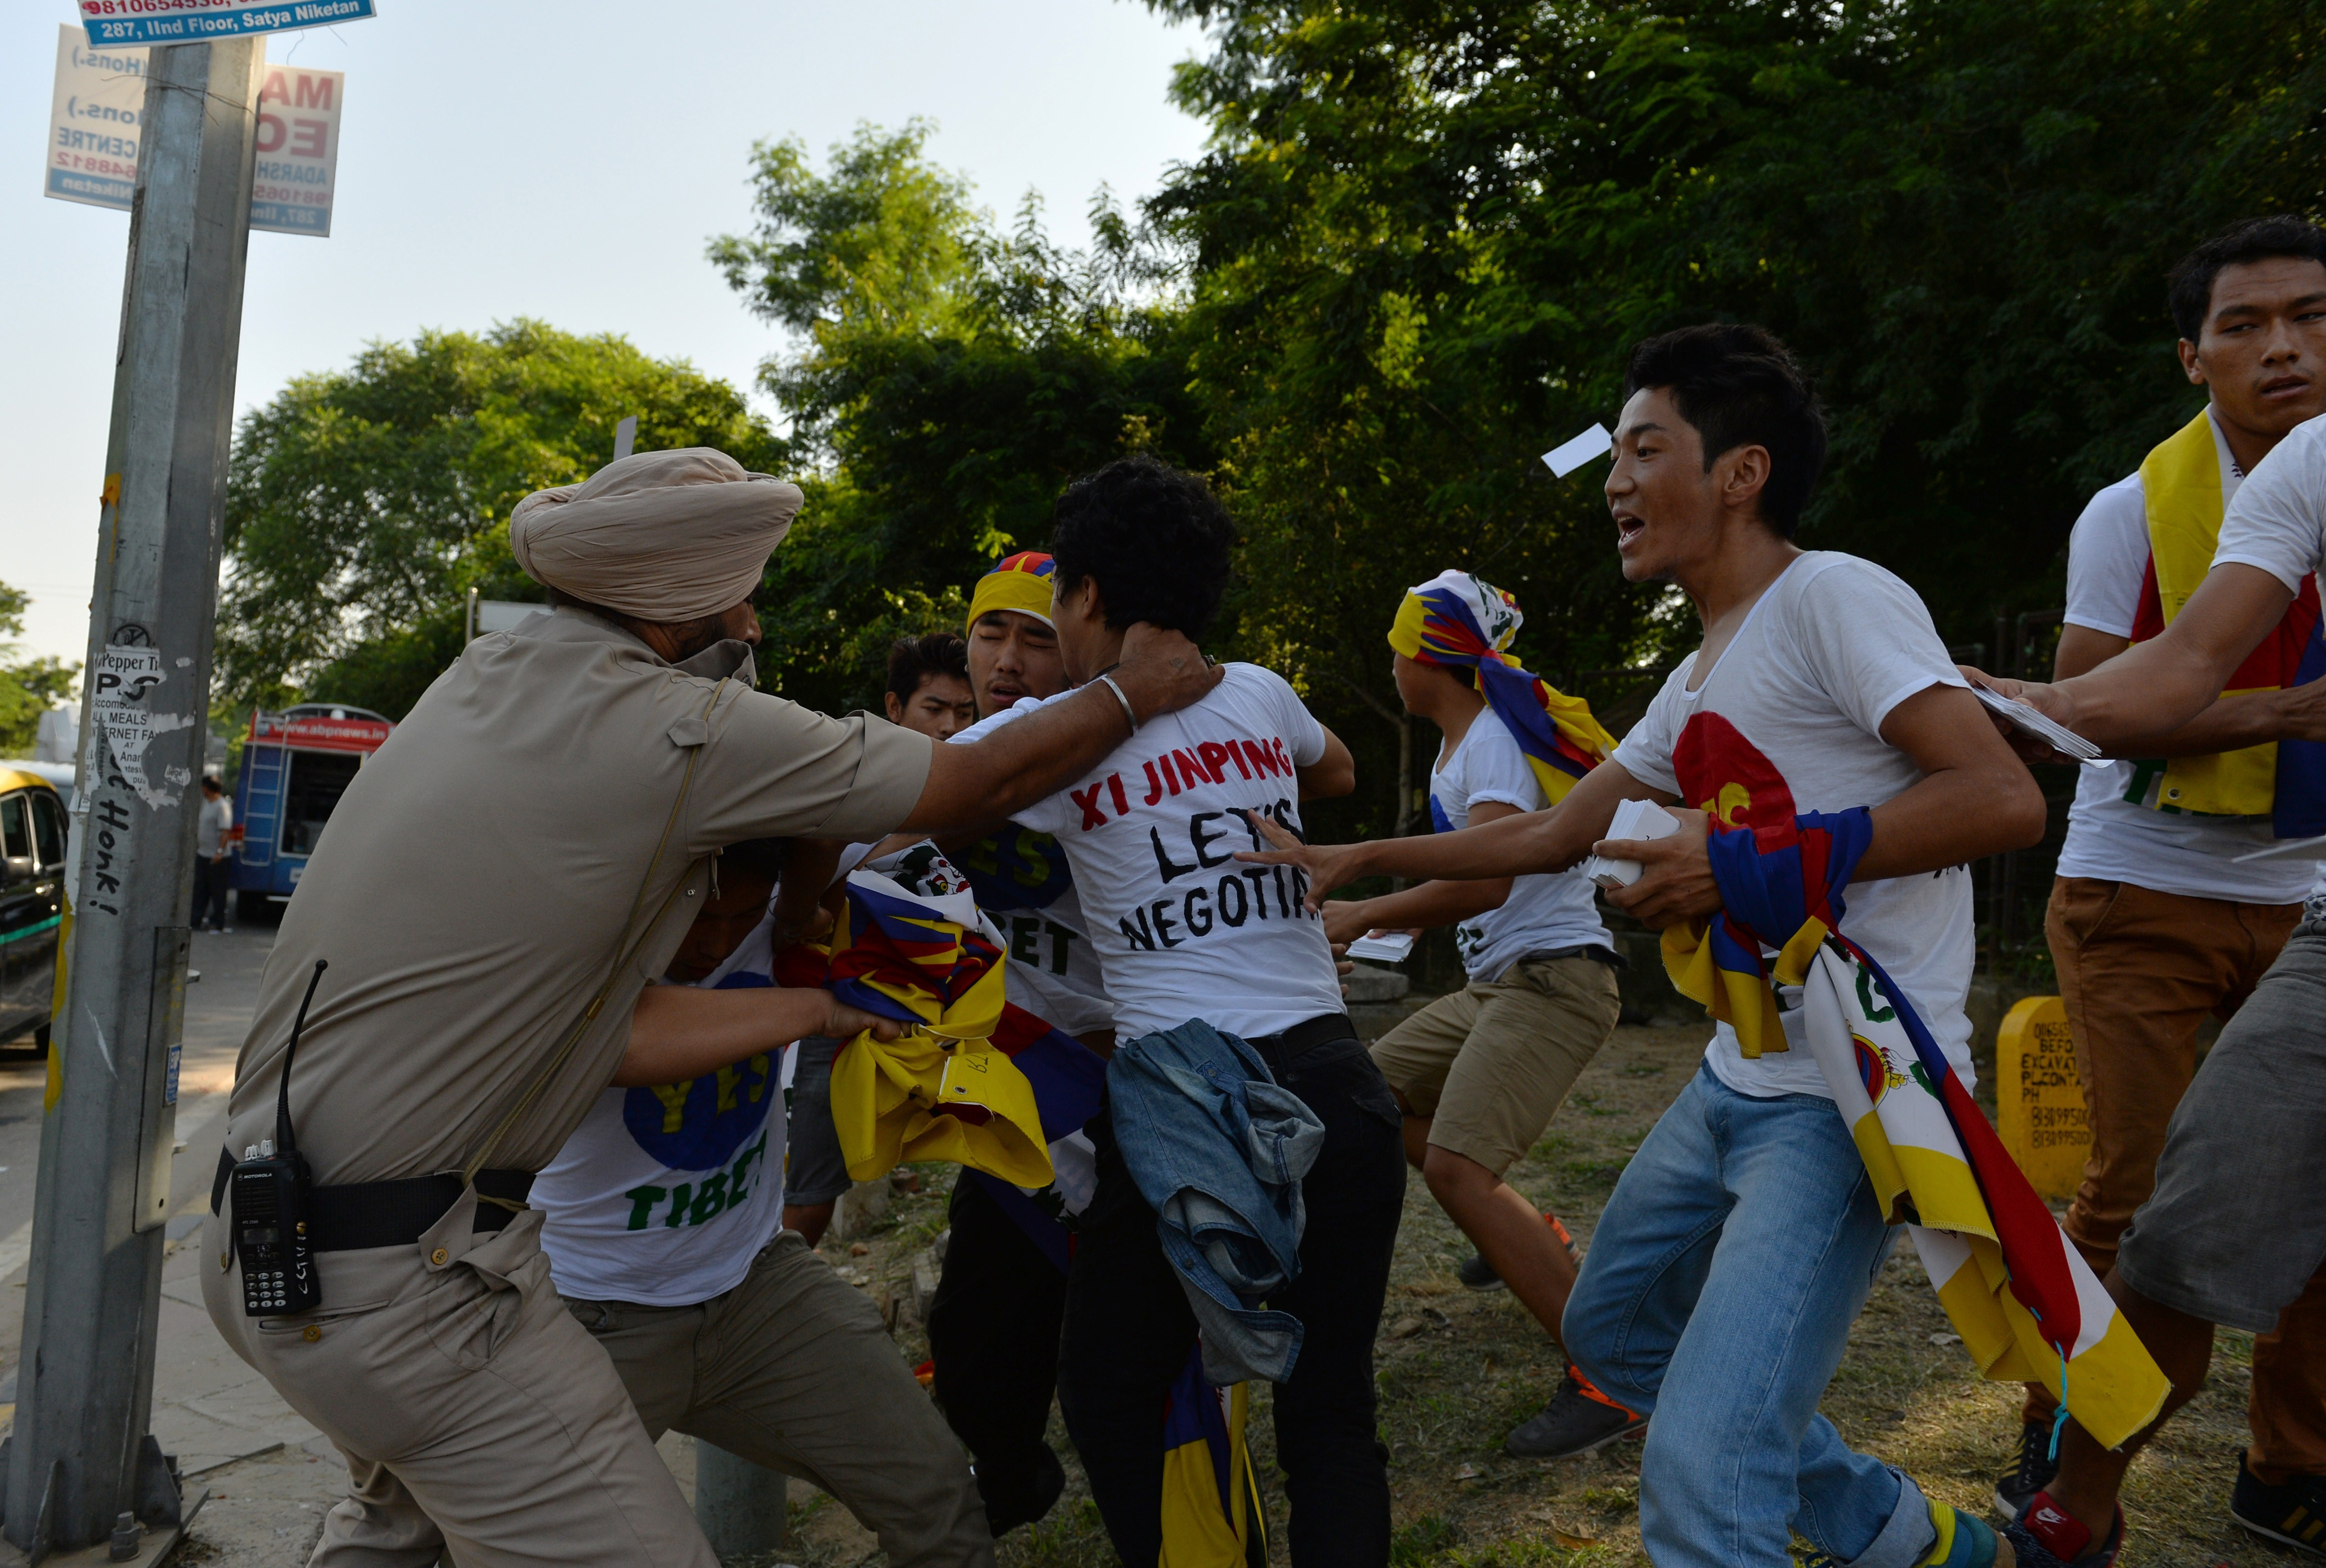 Indian police try to prevent exiled Tibetan youths from advancing as they protest against a visit to India by Chinese President Xi Jinping outside a hotel in New Delhi on Sept. 18, 2014